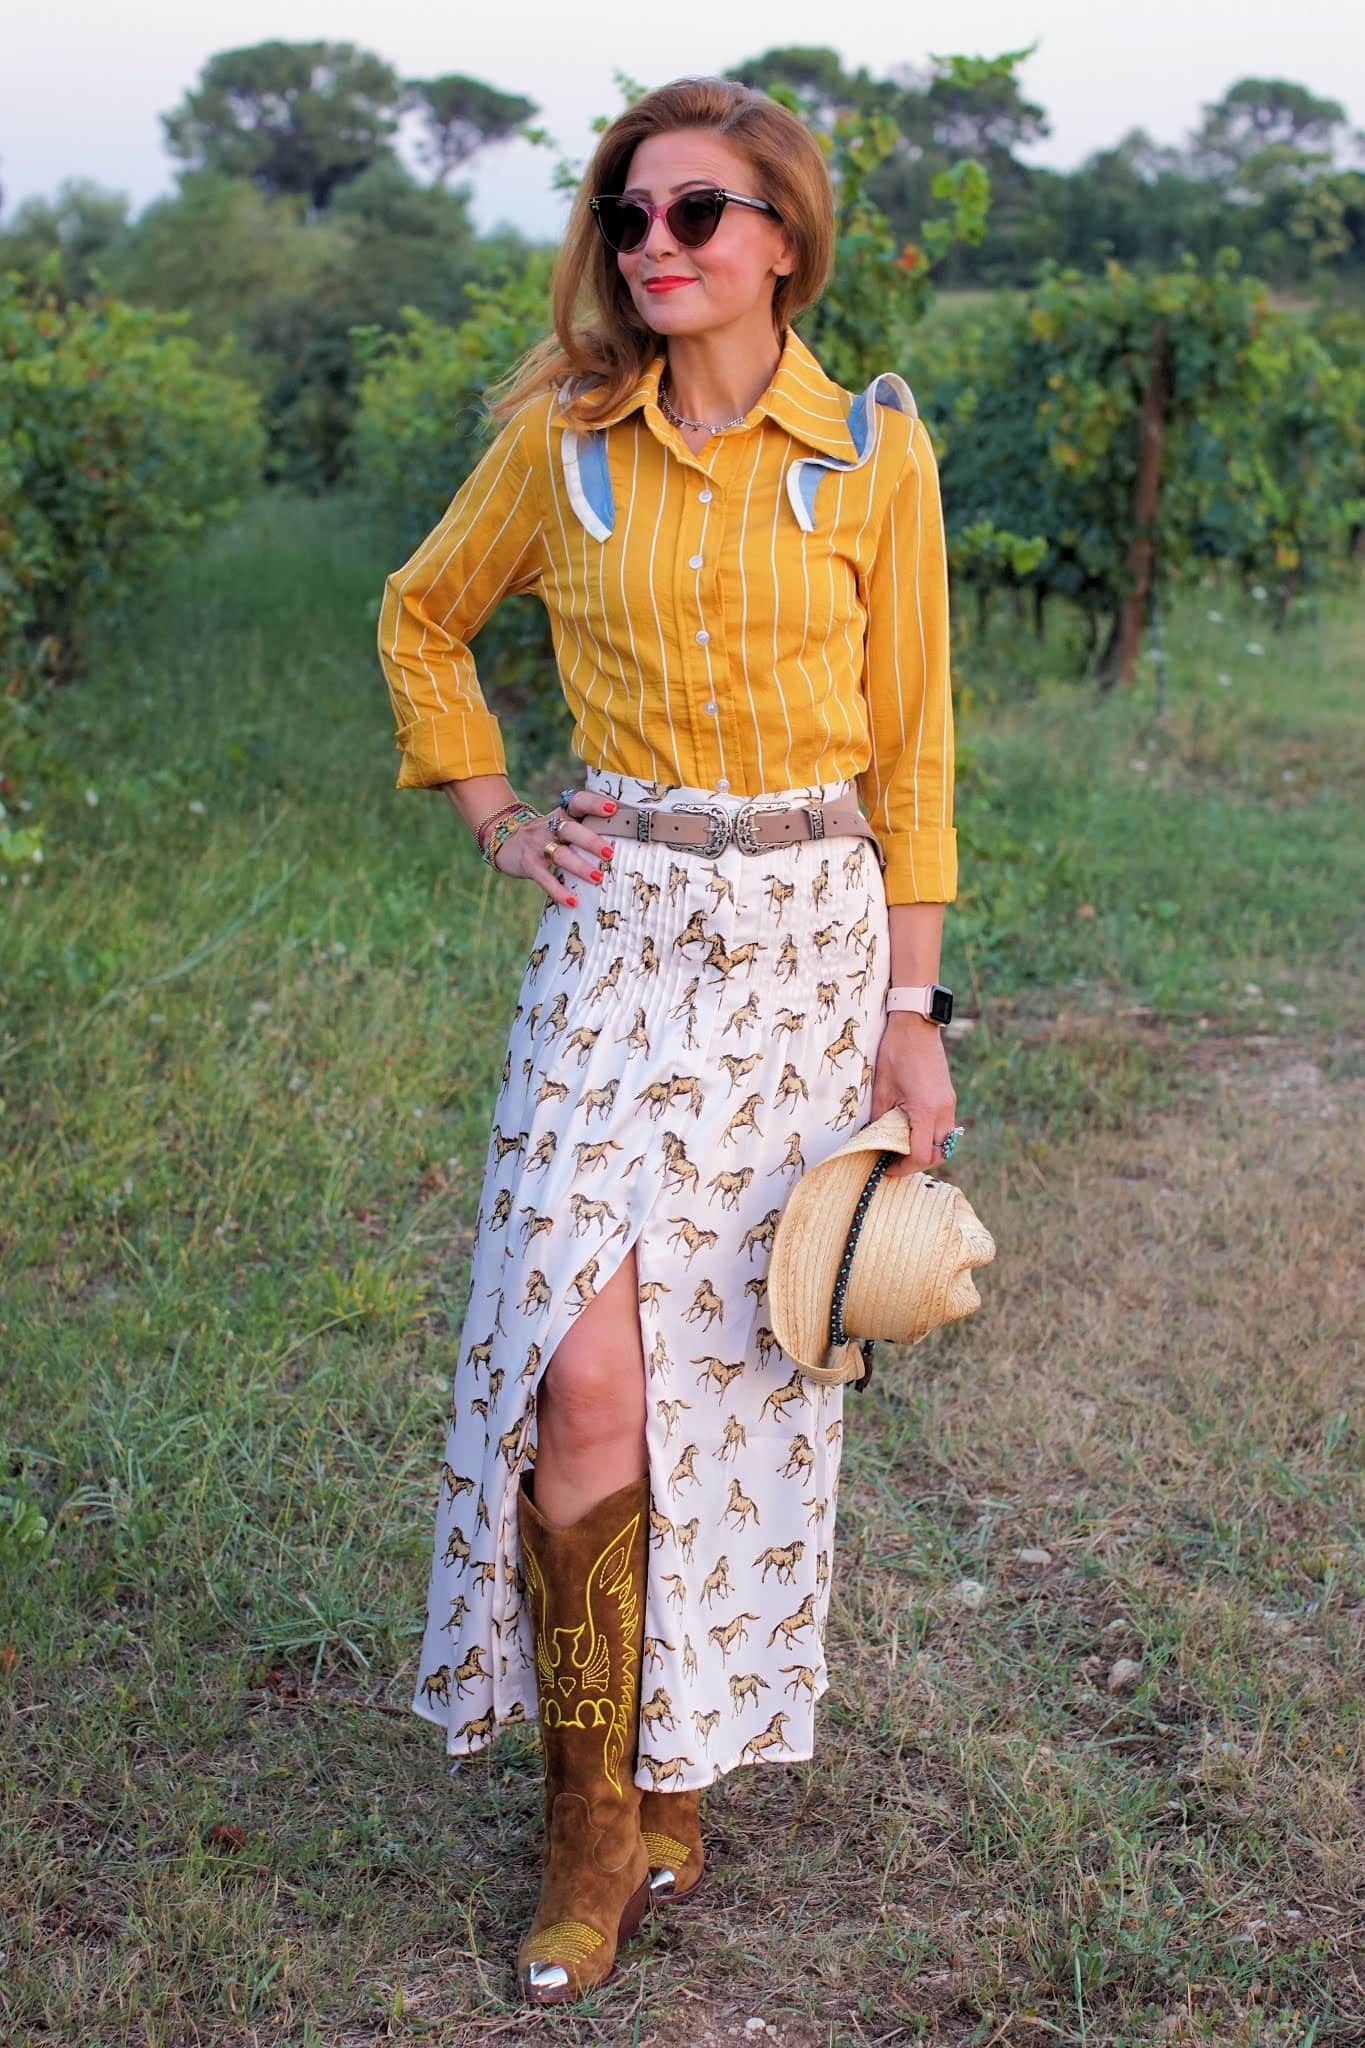 Vale from Fashion and Cookies in a yellow striped shirt and a pony print skirt